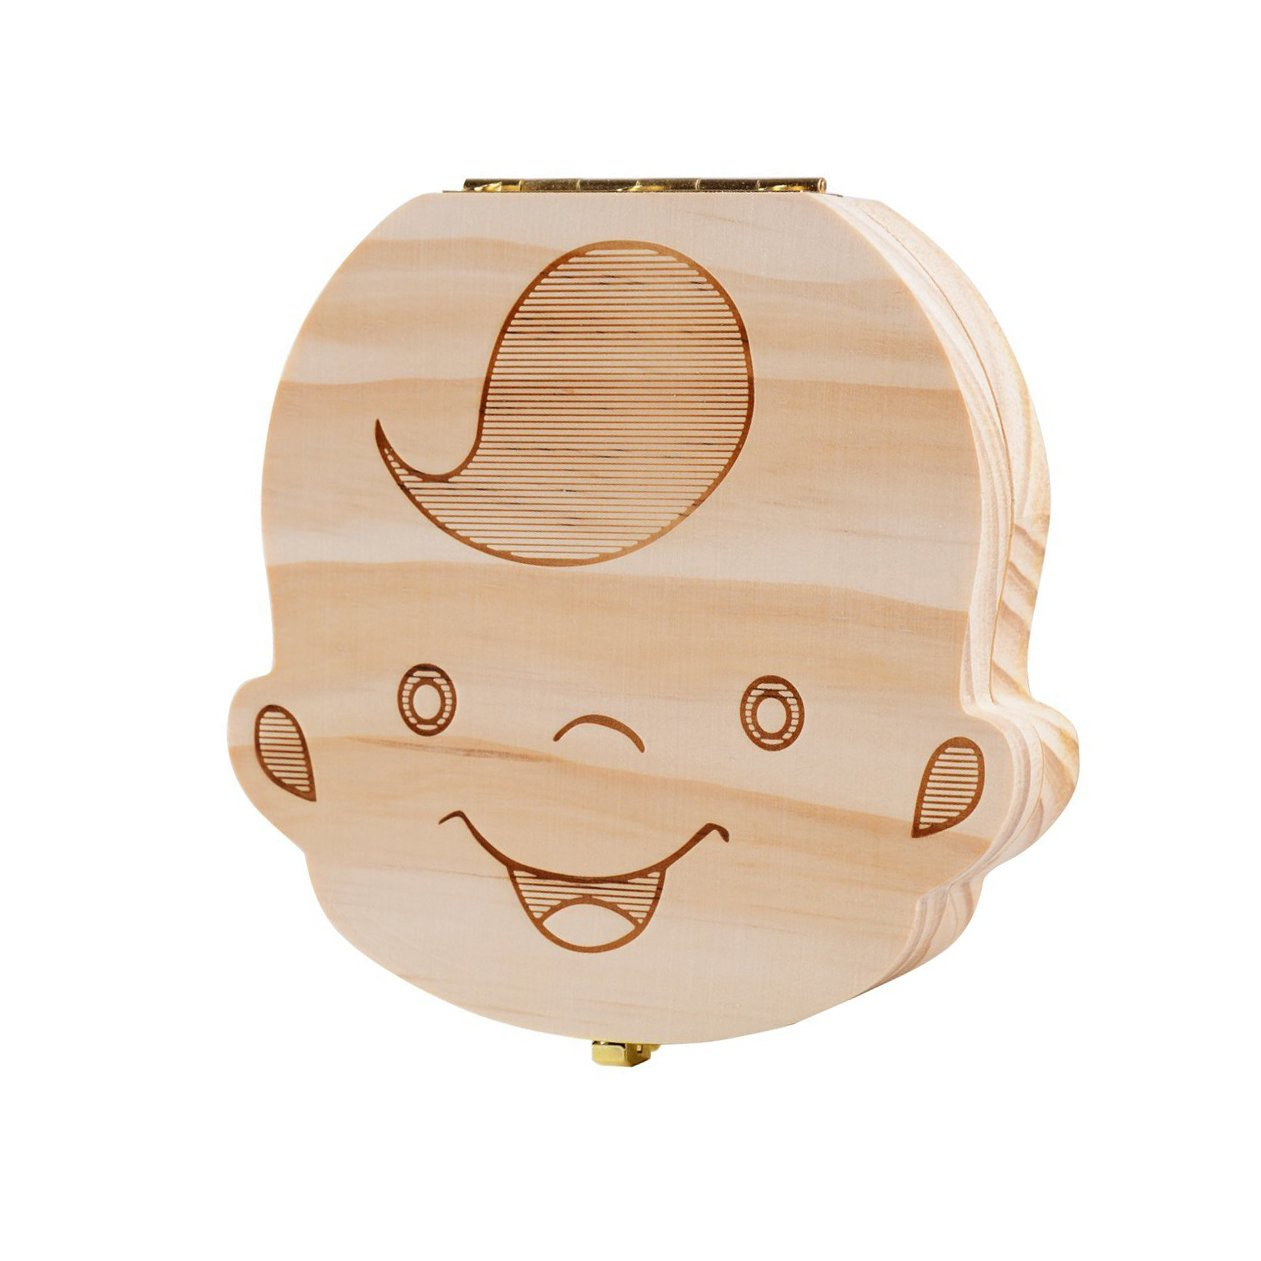 Teeth Boxes, Lance Home Wooden Cartoon Pattern Baby Save Organizer Milk Tooth Wood Storage& Souvenir Box For Kids (Girl)